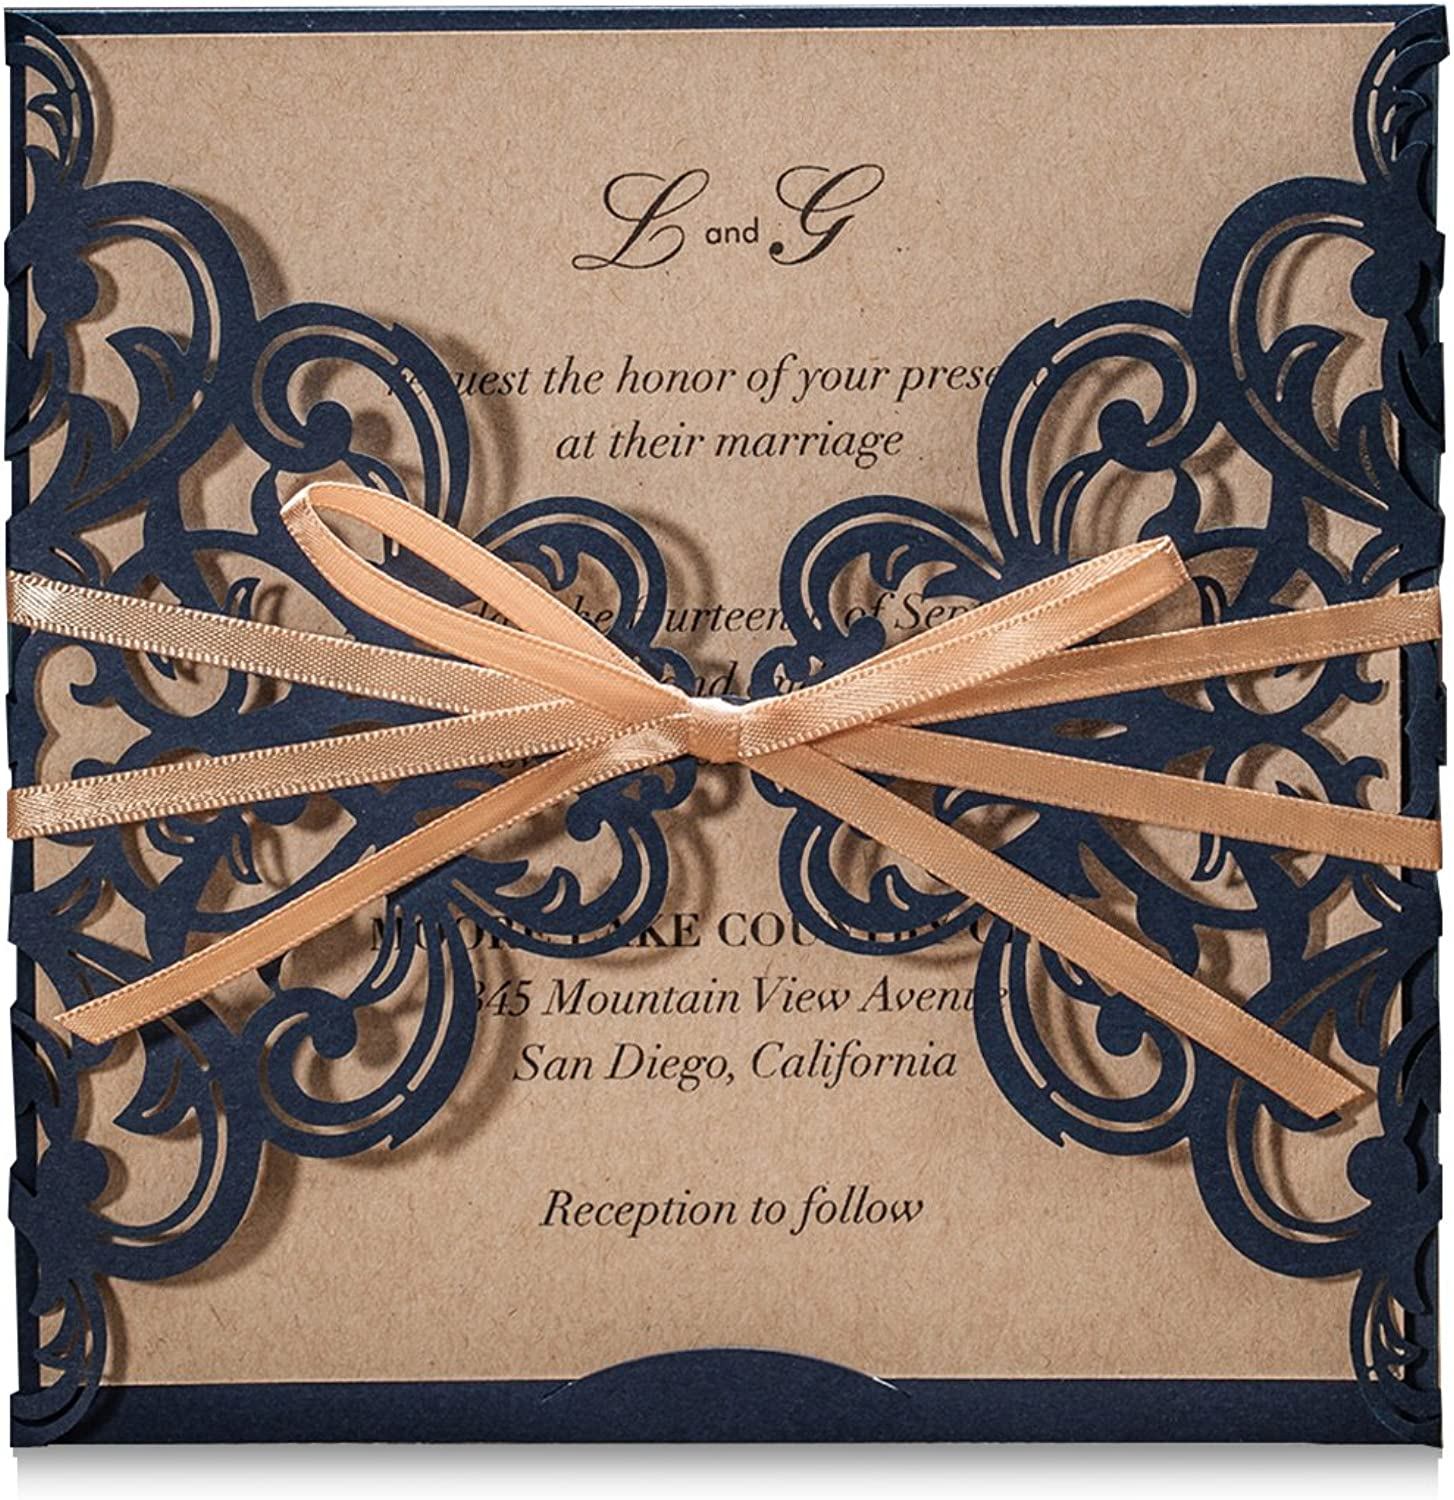 Wishmade Navy bluee Rustic Square Laser Cut Wedding Invitations Cards with Bow Lace Sleeve Cards for Engagement Baby Shower Birthday Quinceanera (pack of 50pcs)